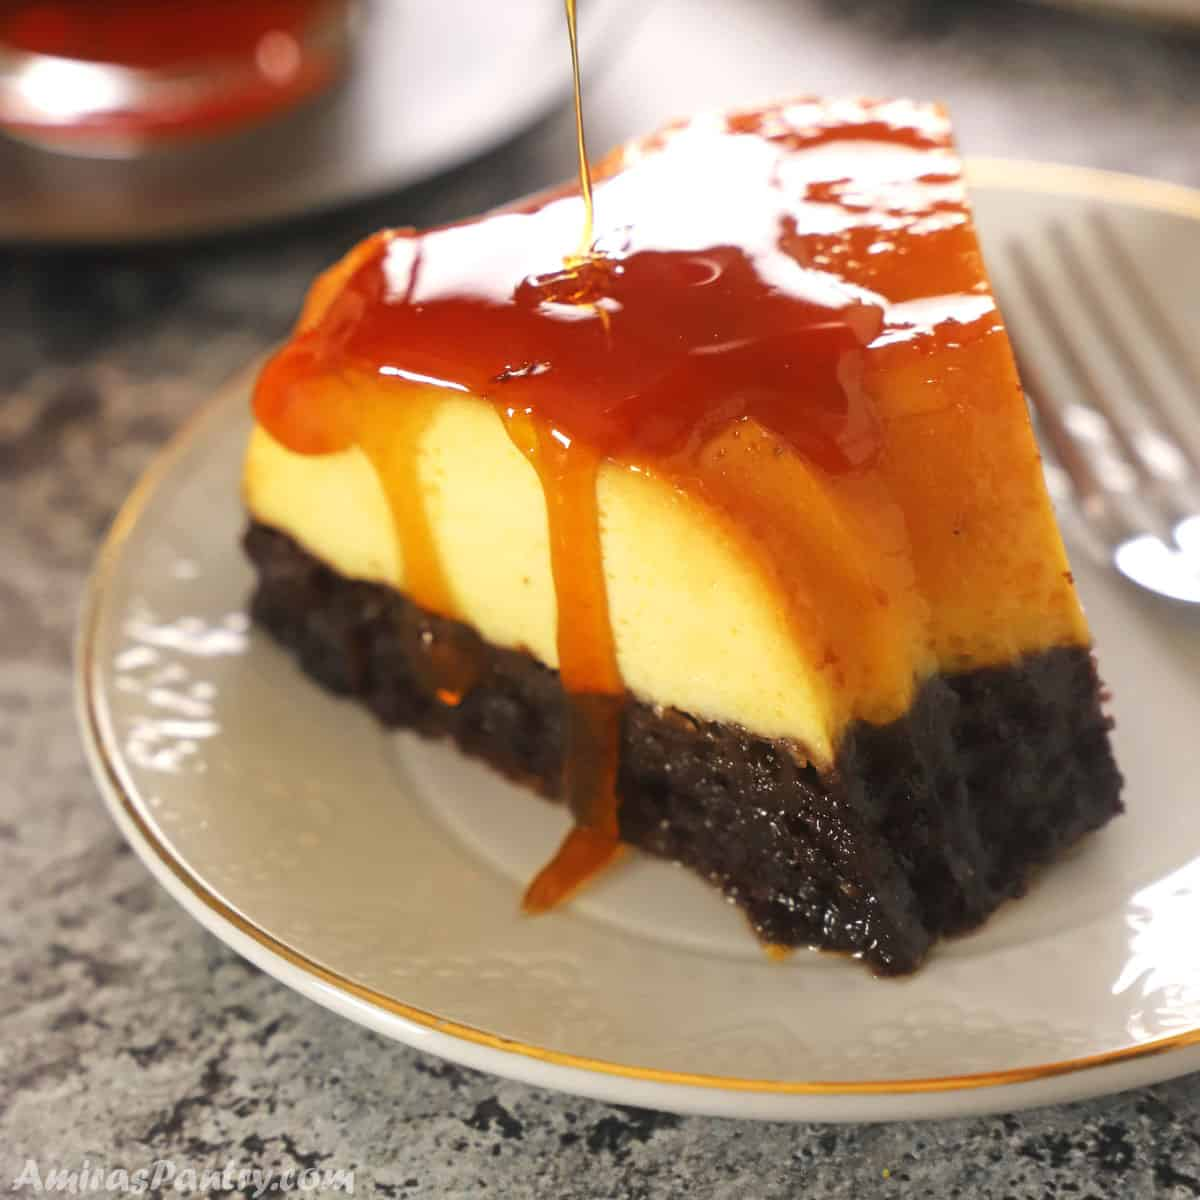 A piece of chocoflan on a white dessert plate with caramel dropping down its side.